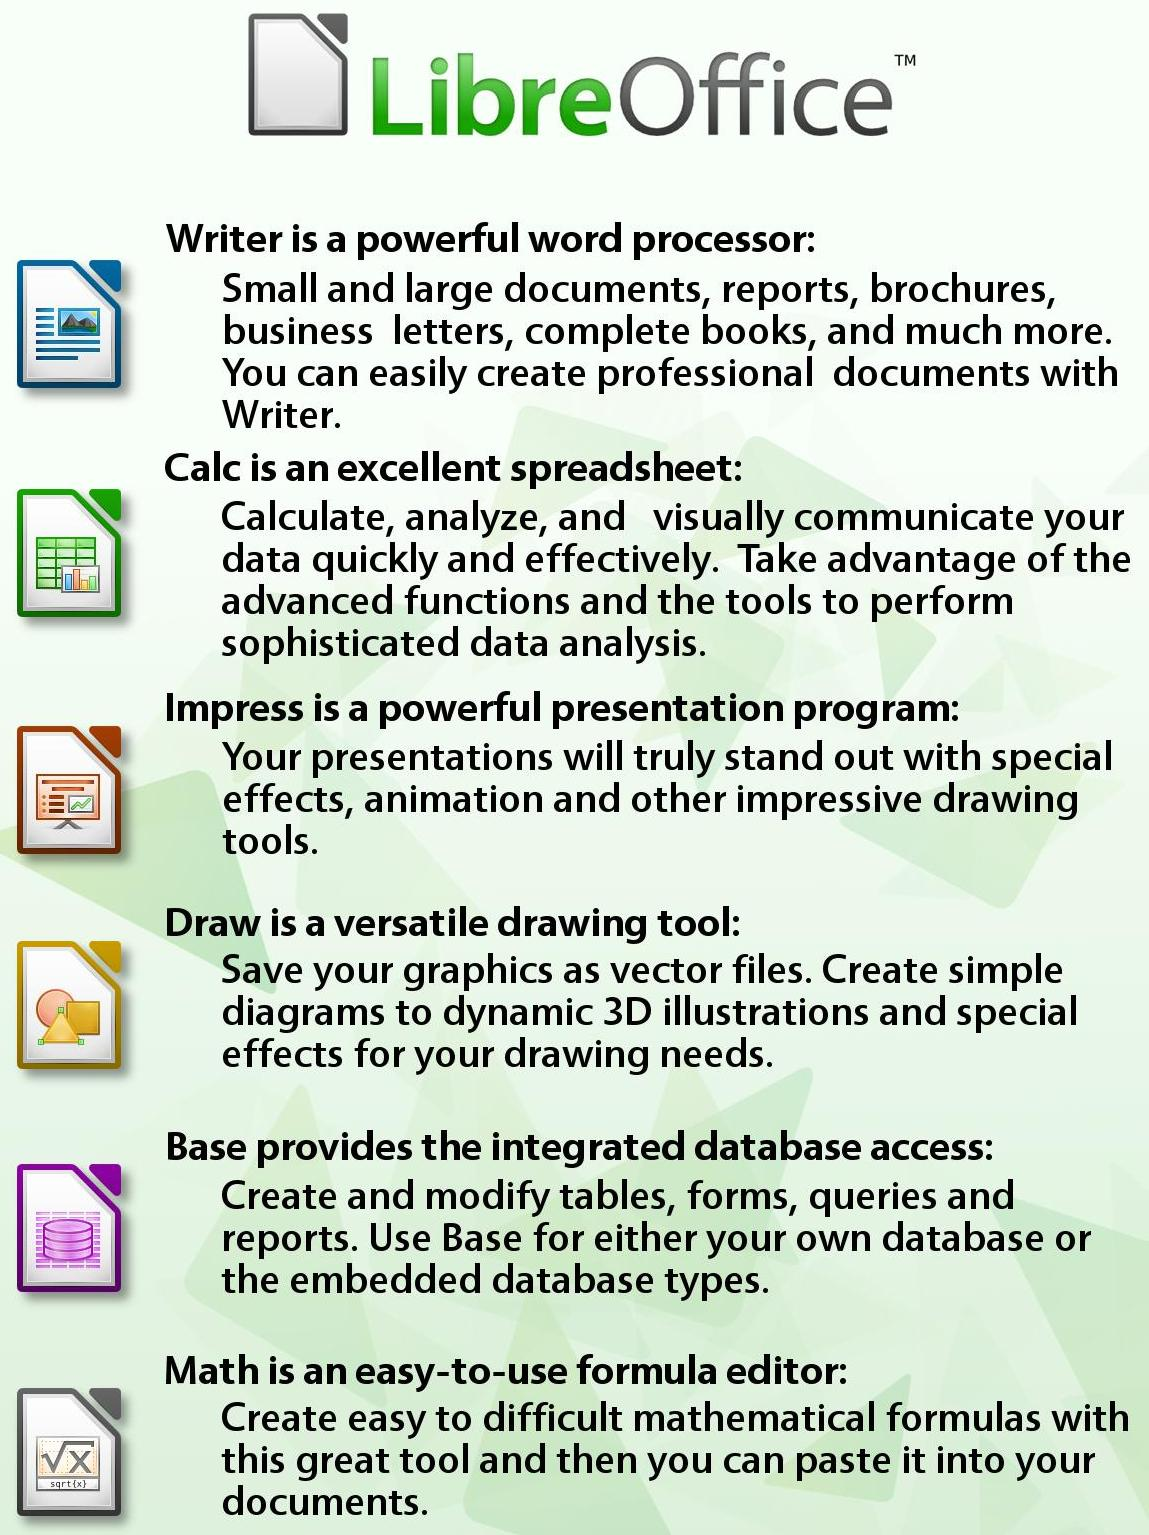 LibreOffice Description